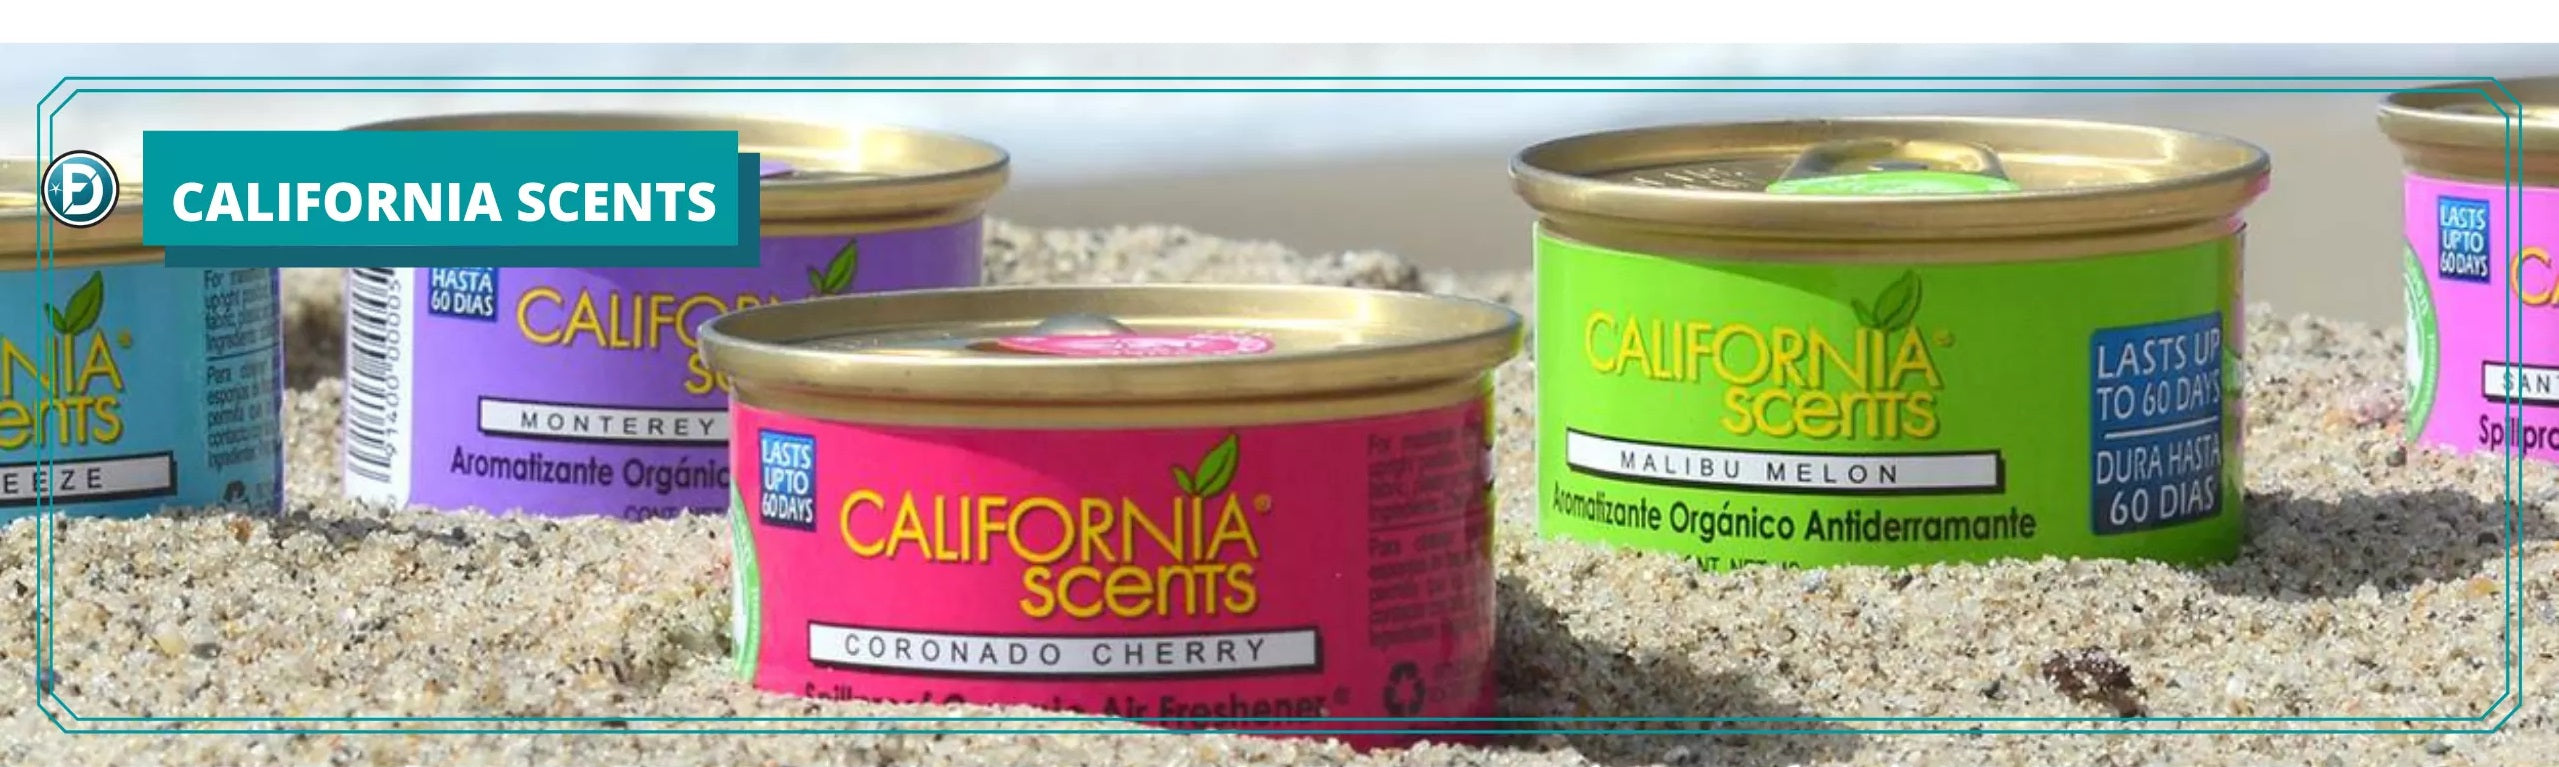 CALIFORNIA SCENTS - FORMULA DETAILING